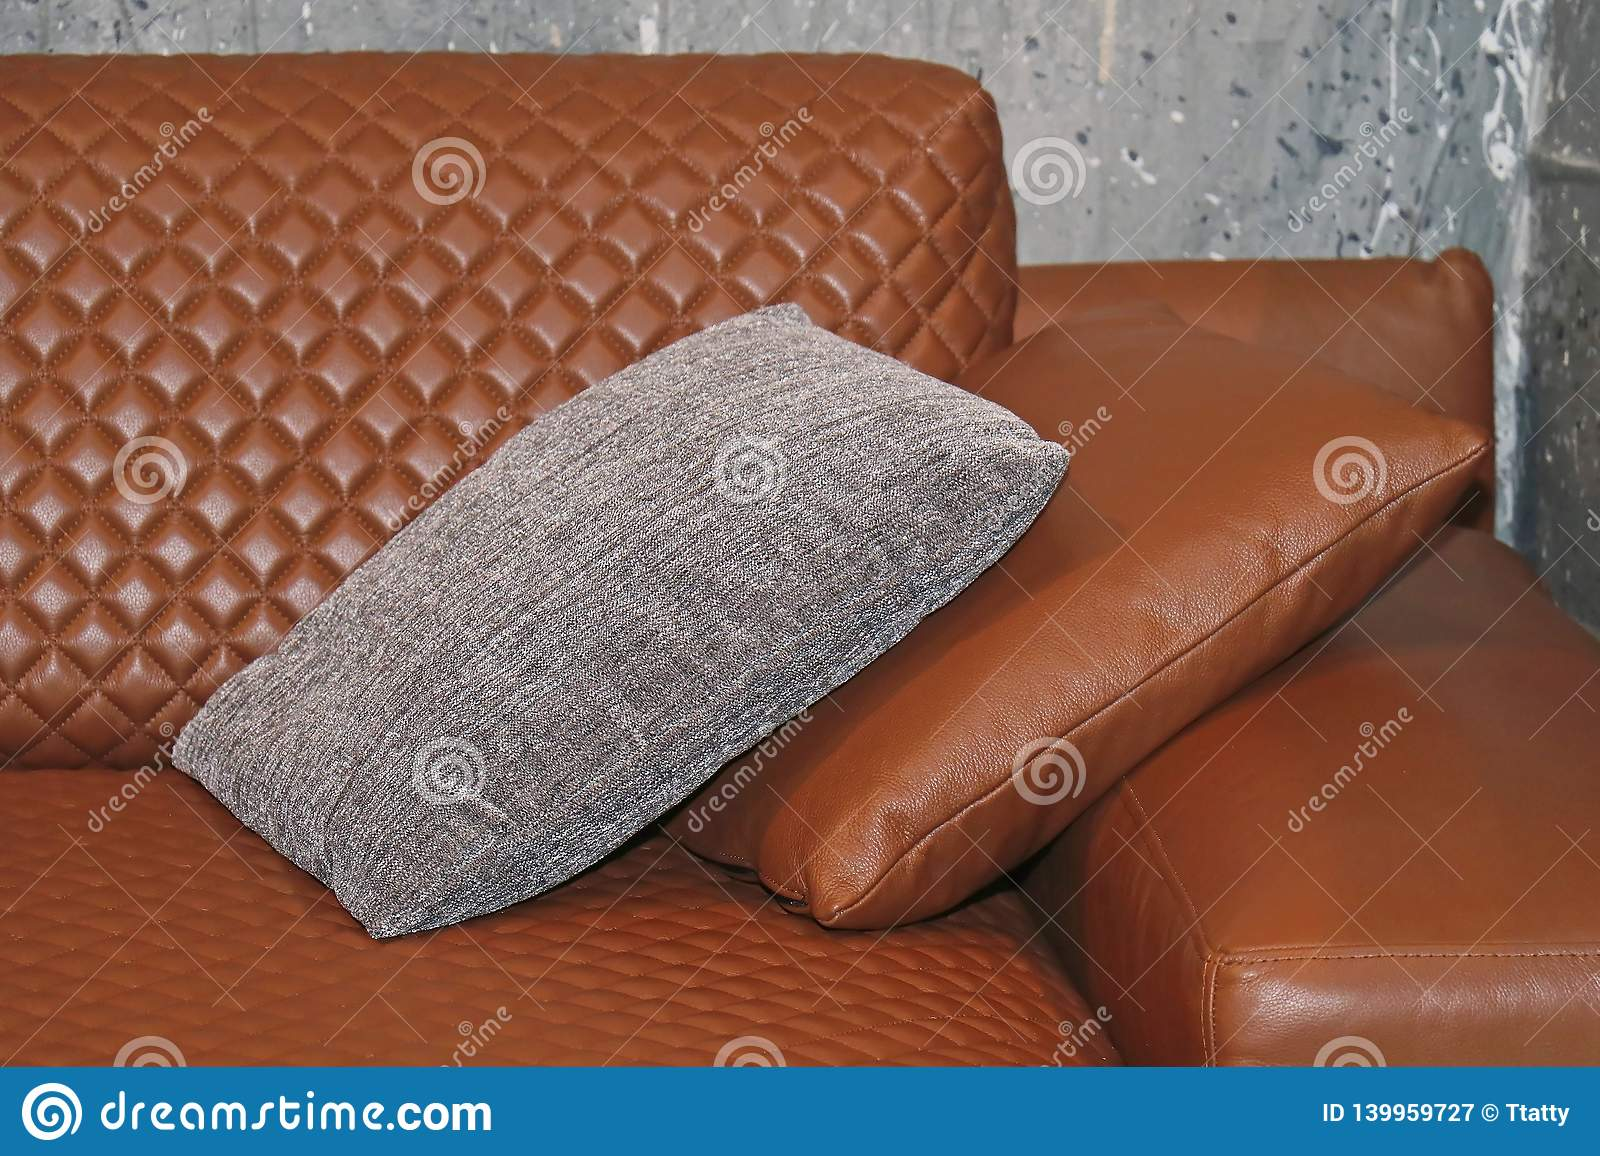 Admirable Leather Couch With Pillows Stock Image Image Of Corner Andrewgaddart Wooden Chair Designs For Living Room Andrewgaddartcom